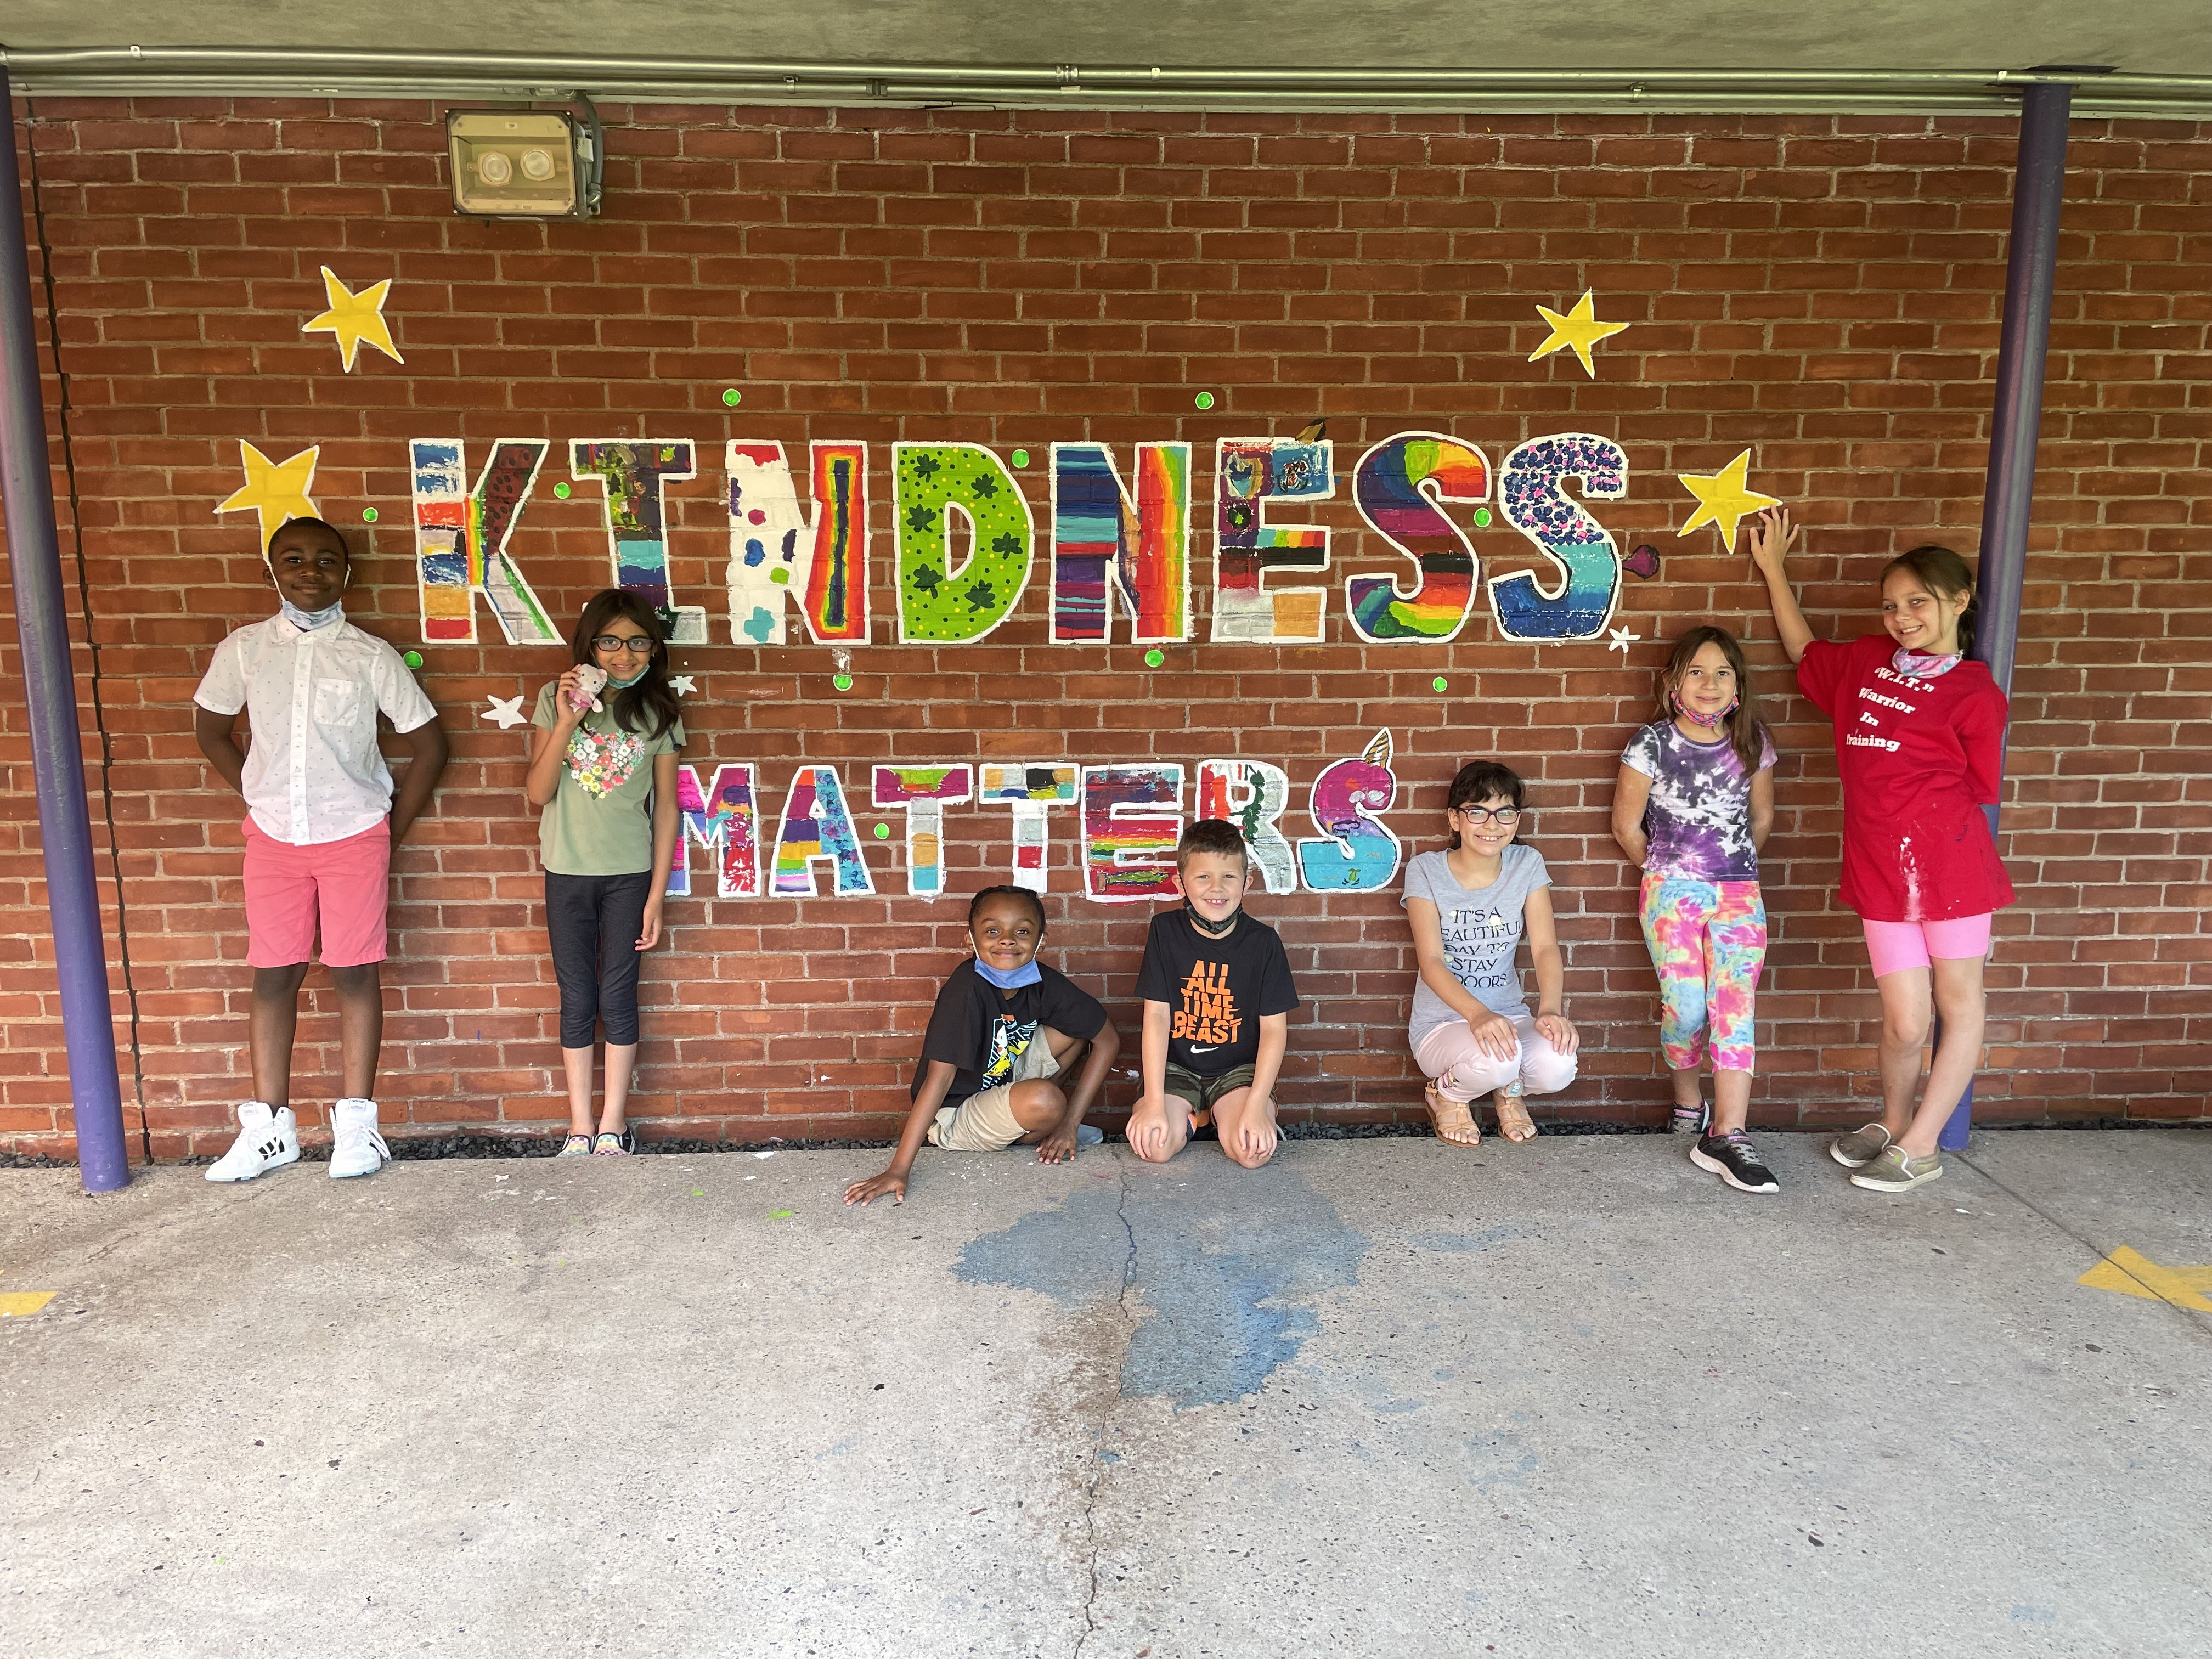 Students pose in front of the mural they created called Kindess Matters